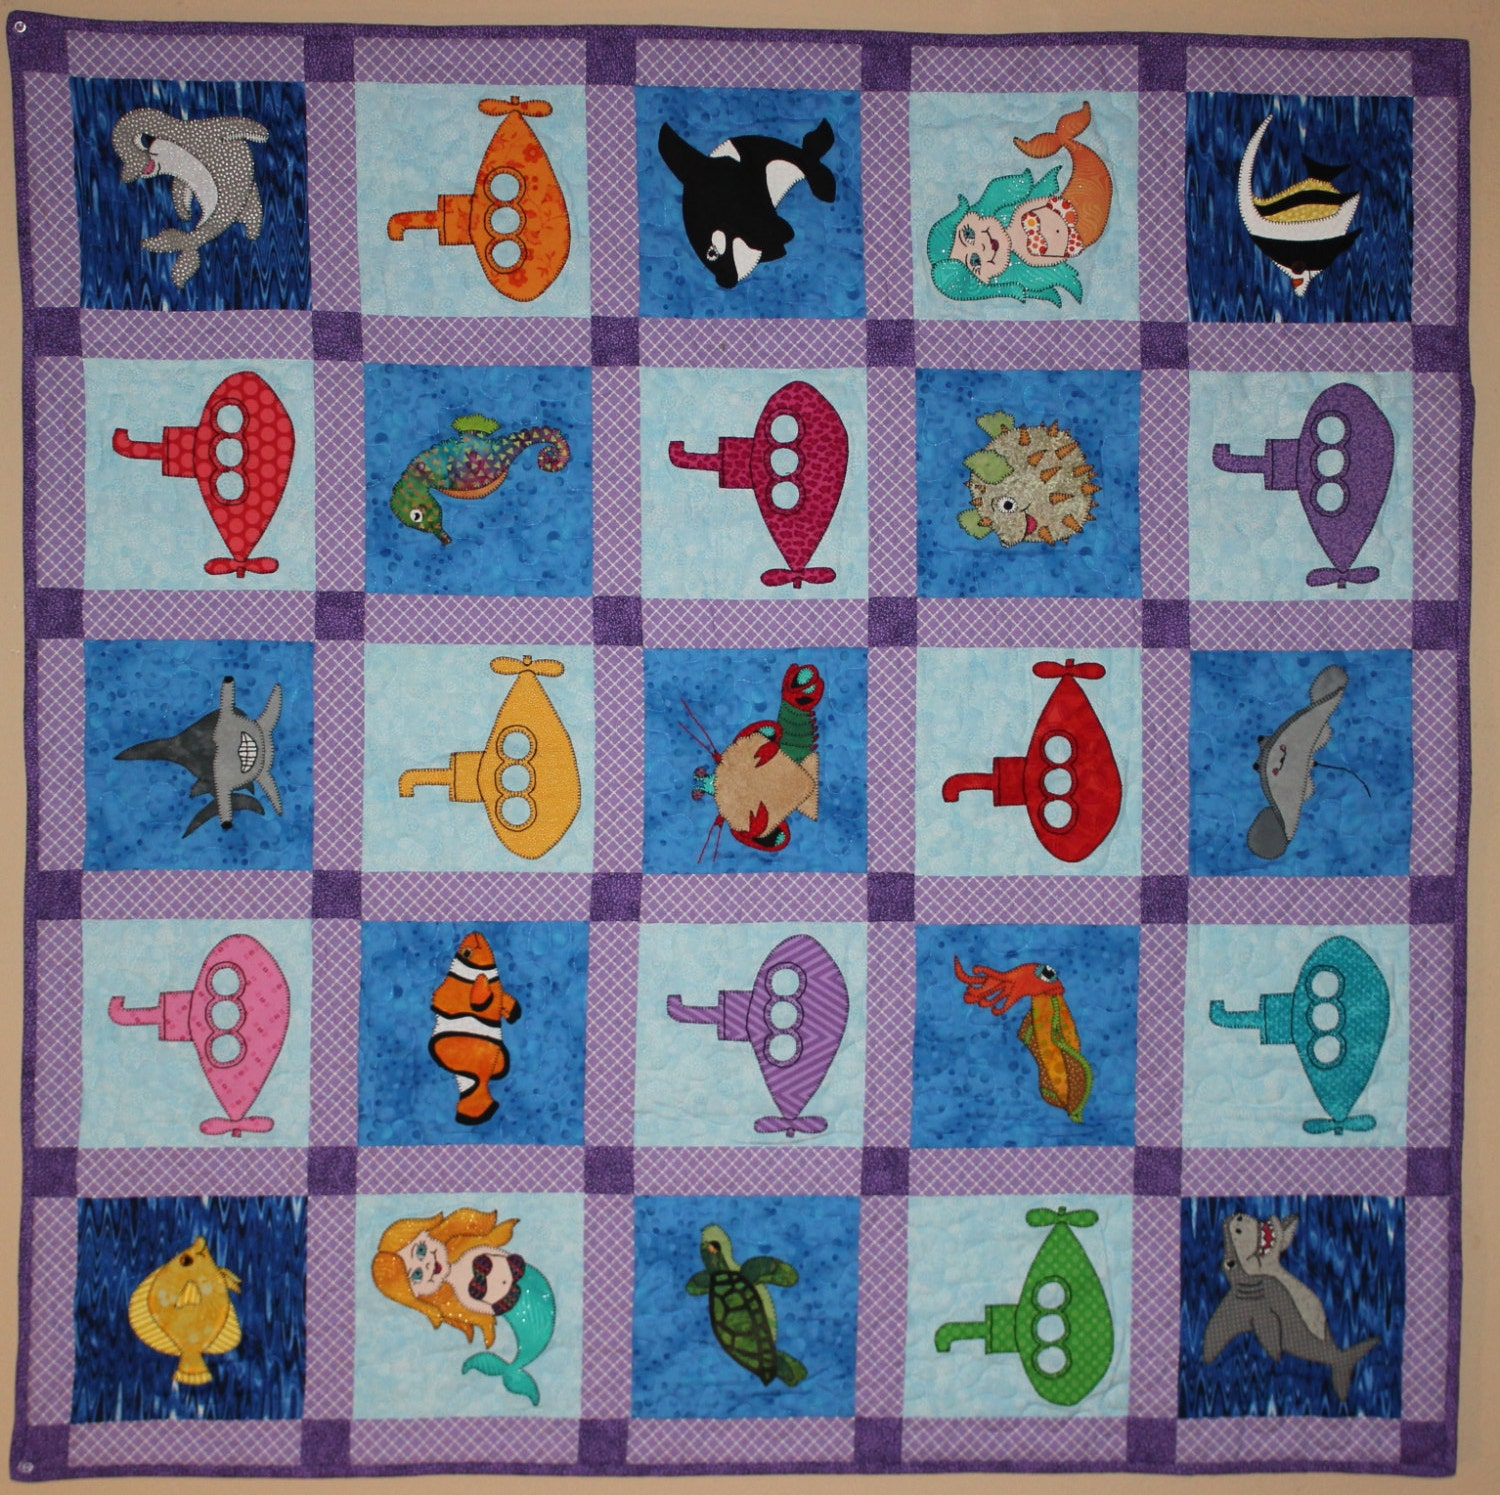 to of i think tend is are part fish love my brain offset accountant dsc always symmetrical chuckles just and in design it but happy quilting the way quilt